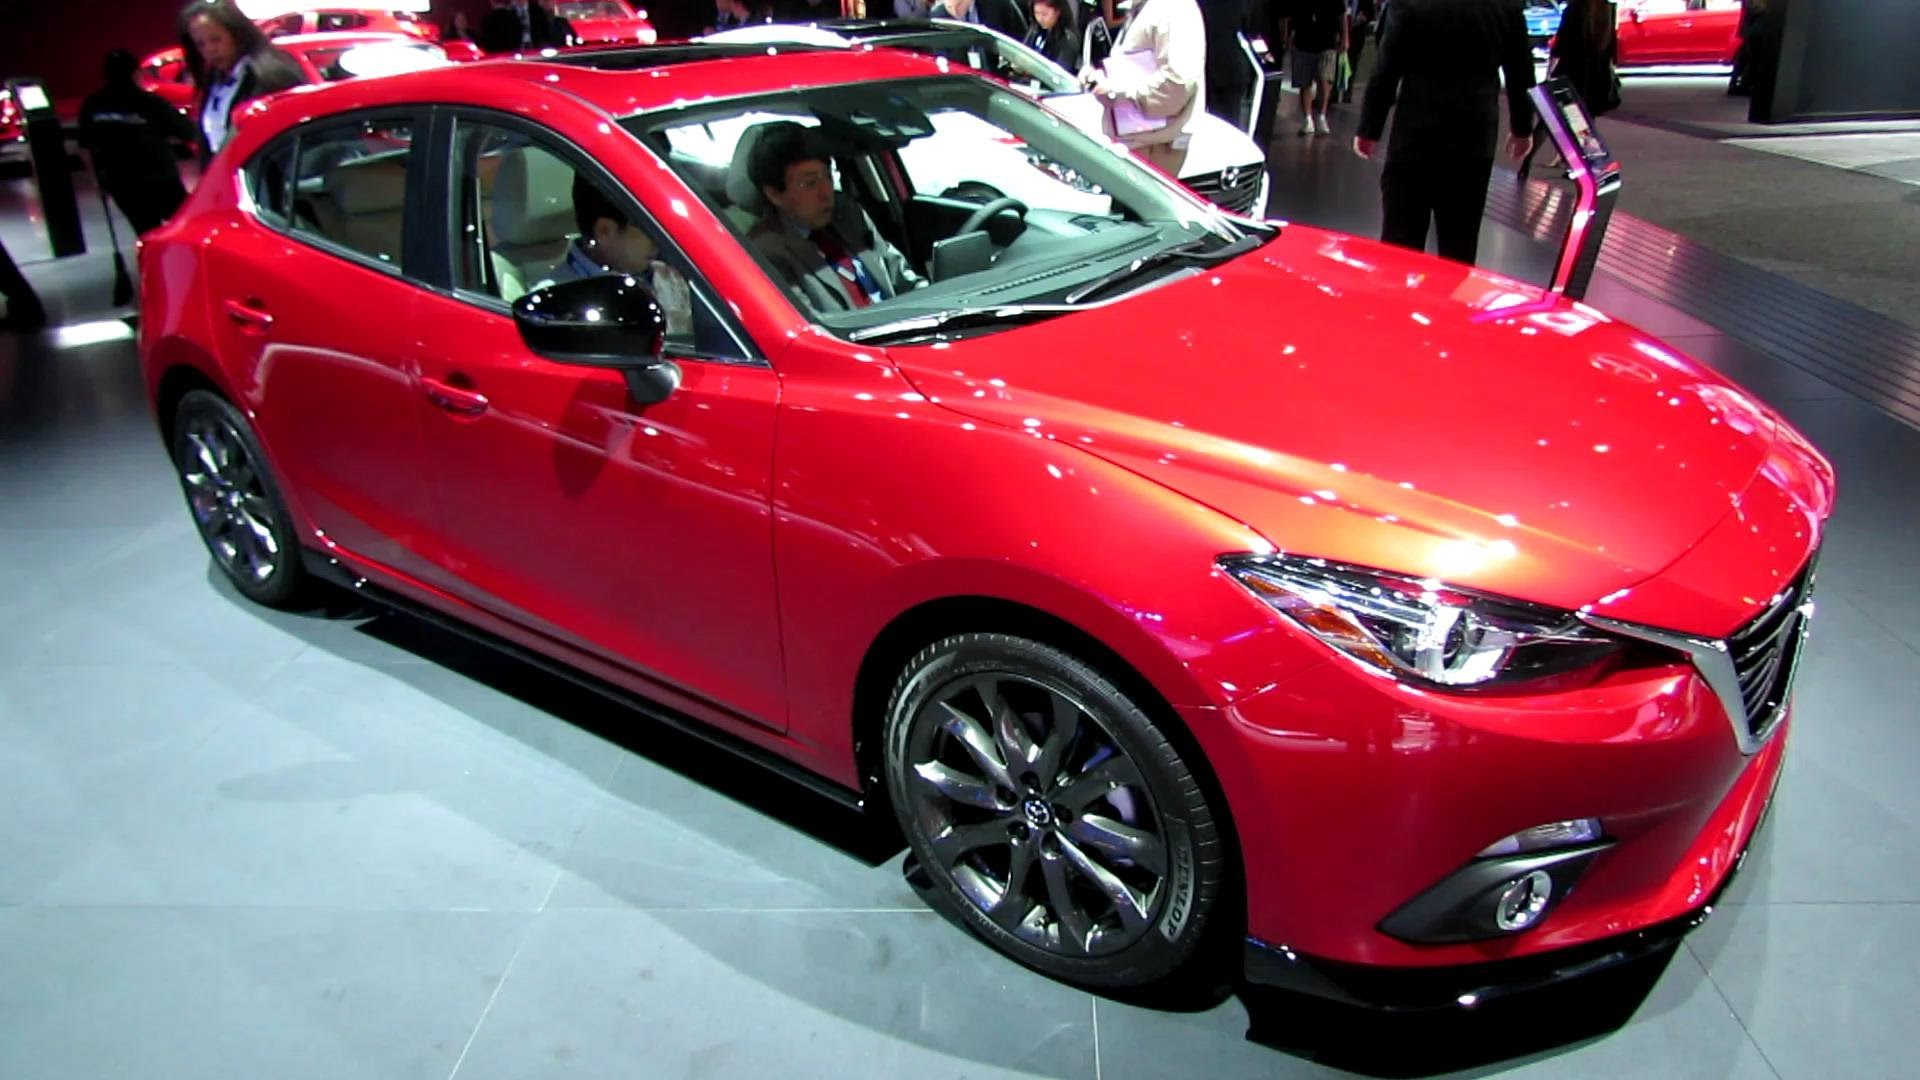 2014 Mazda 3 5-Door Hatchback Grand Touring - Exterior and Interior Walkaround - 2013 LA Auto Show